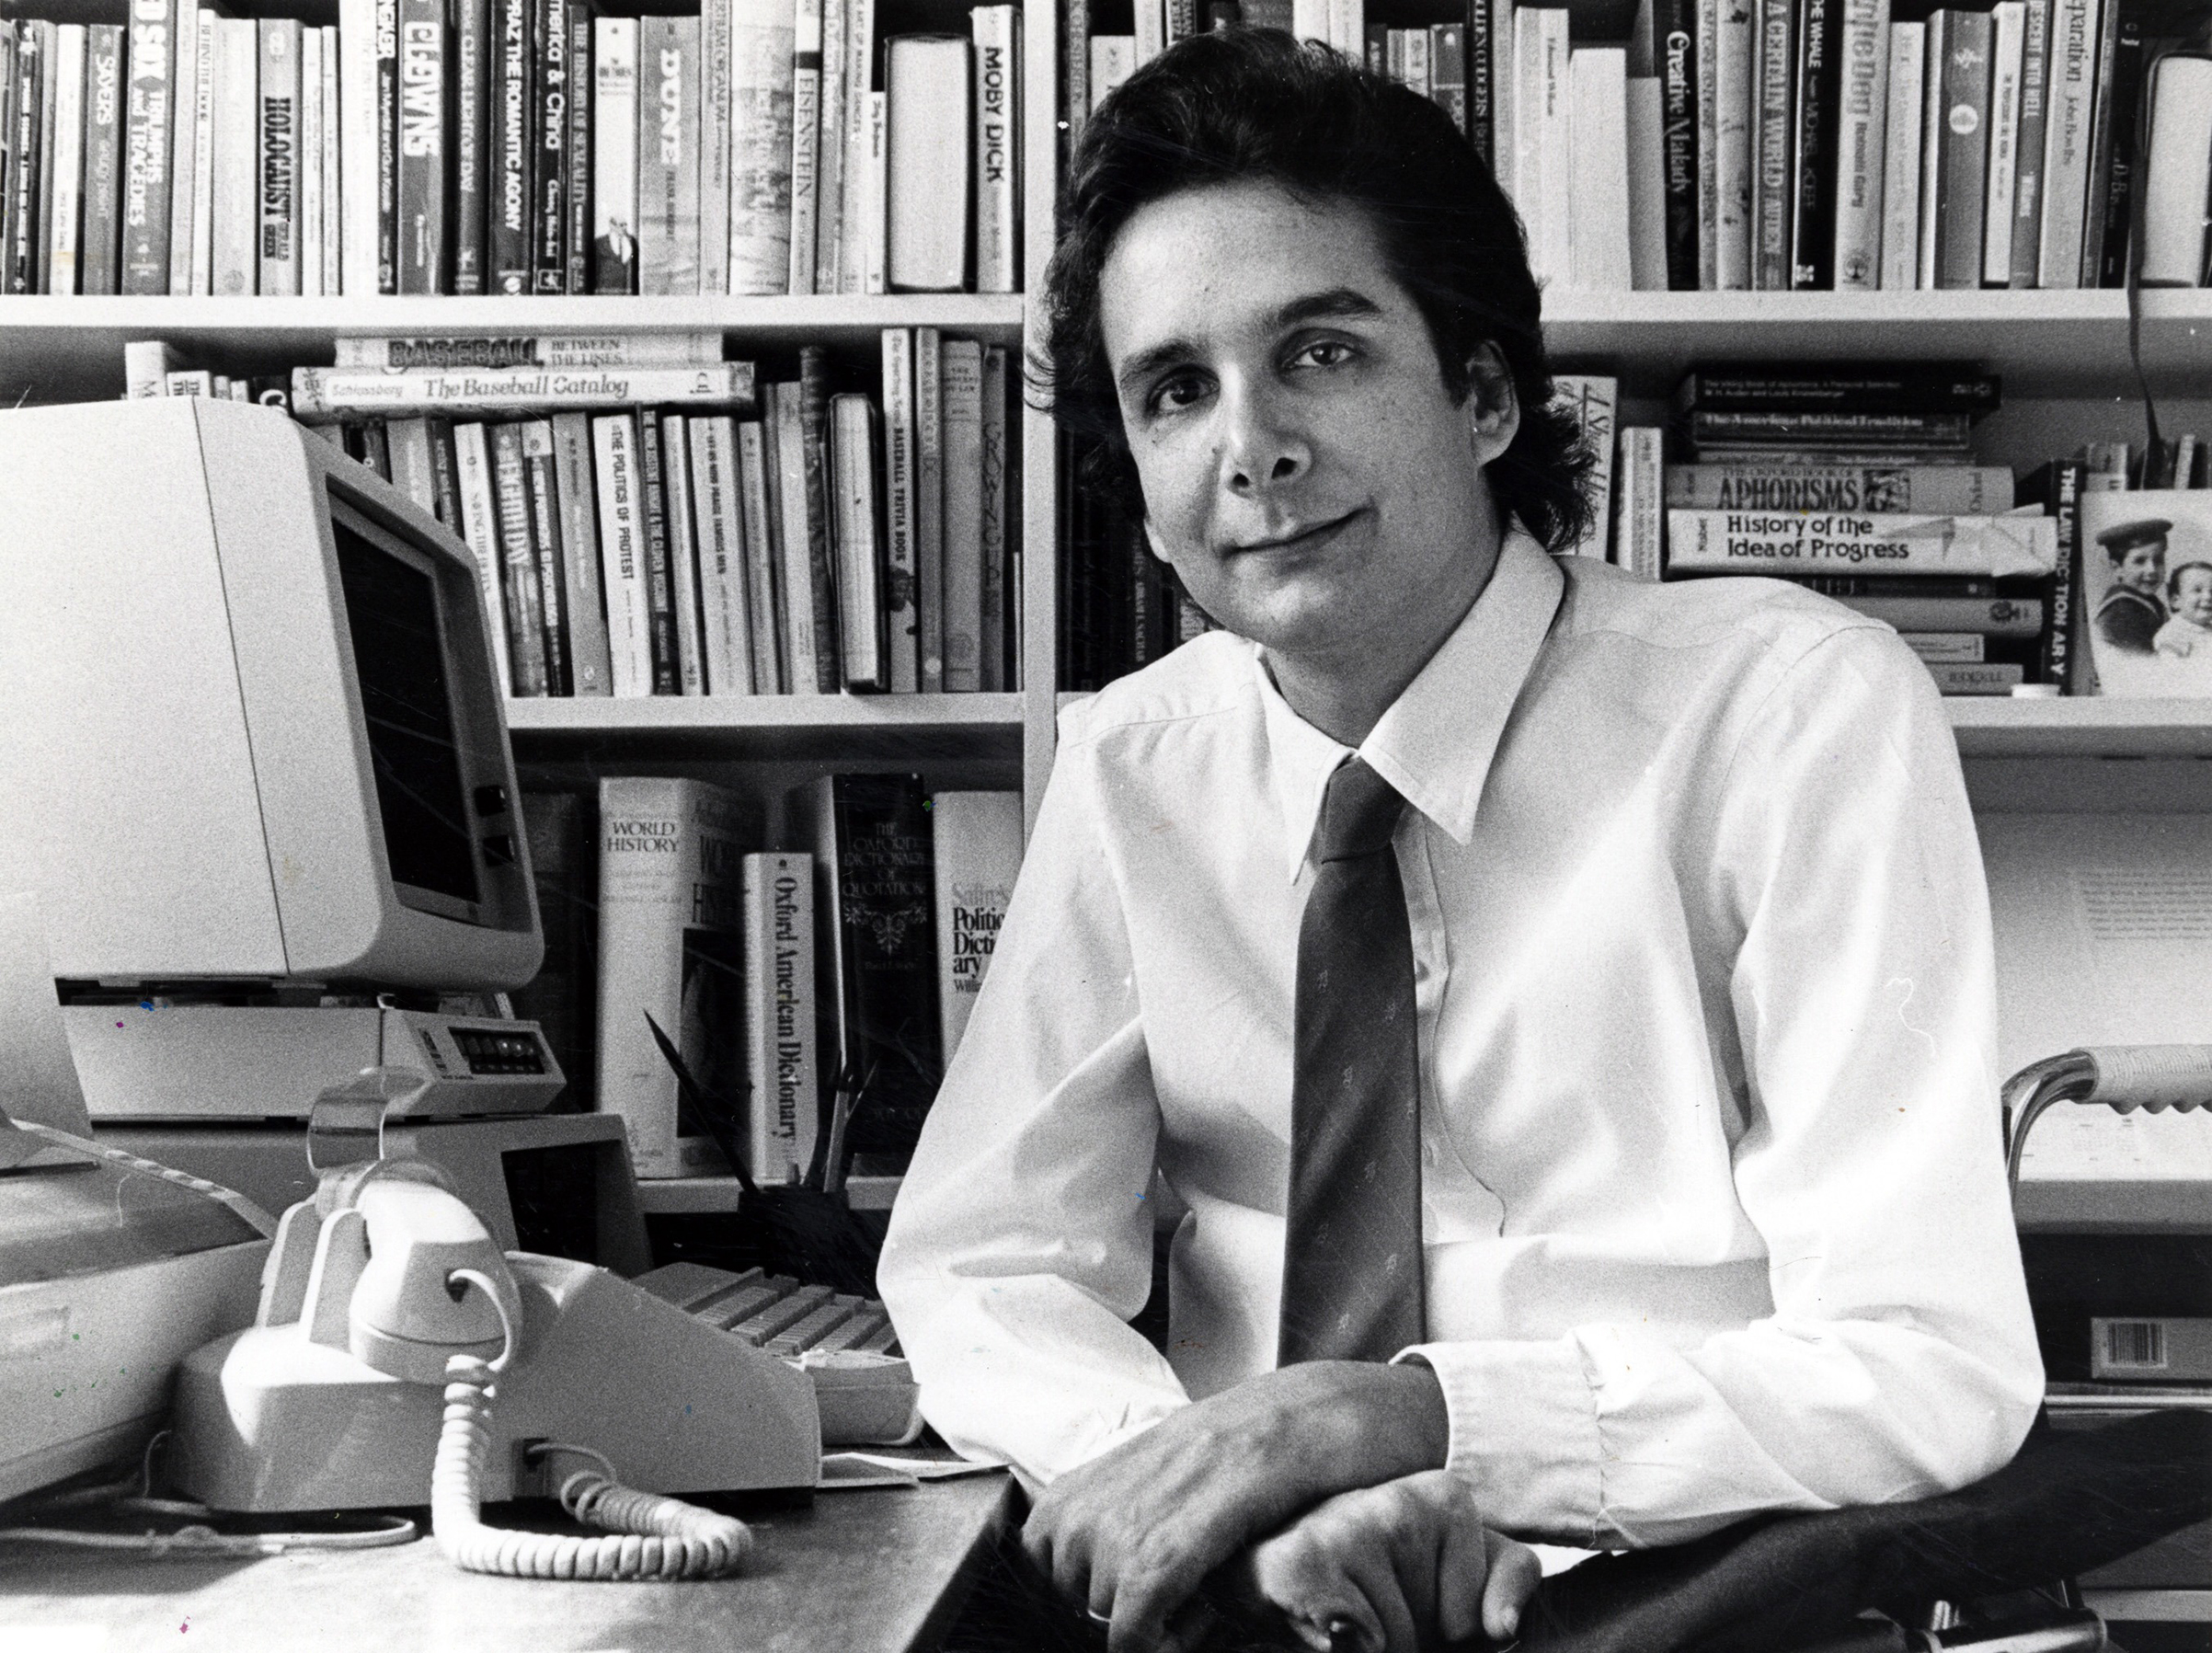 Krauthammer—pictured in Washington, D.C., in 1985—was a contributor to TIME beginning in the early 1980s